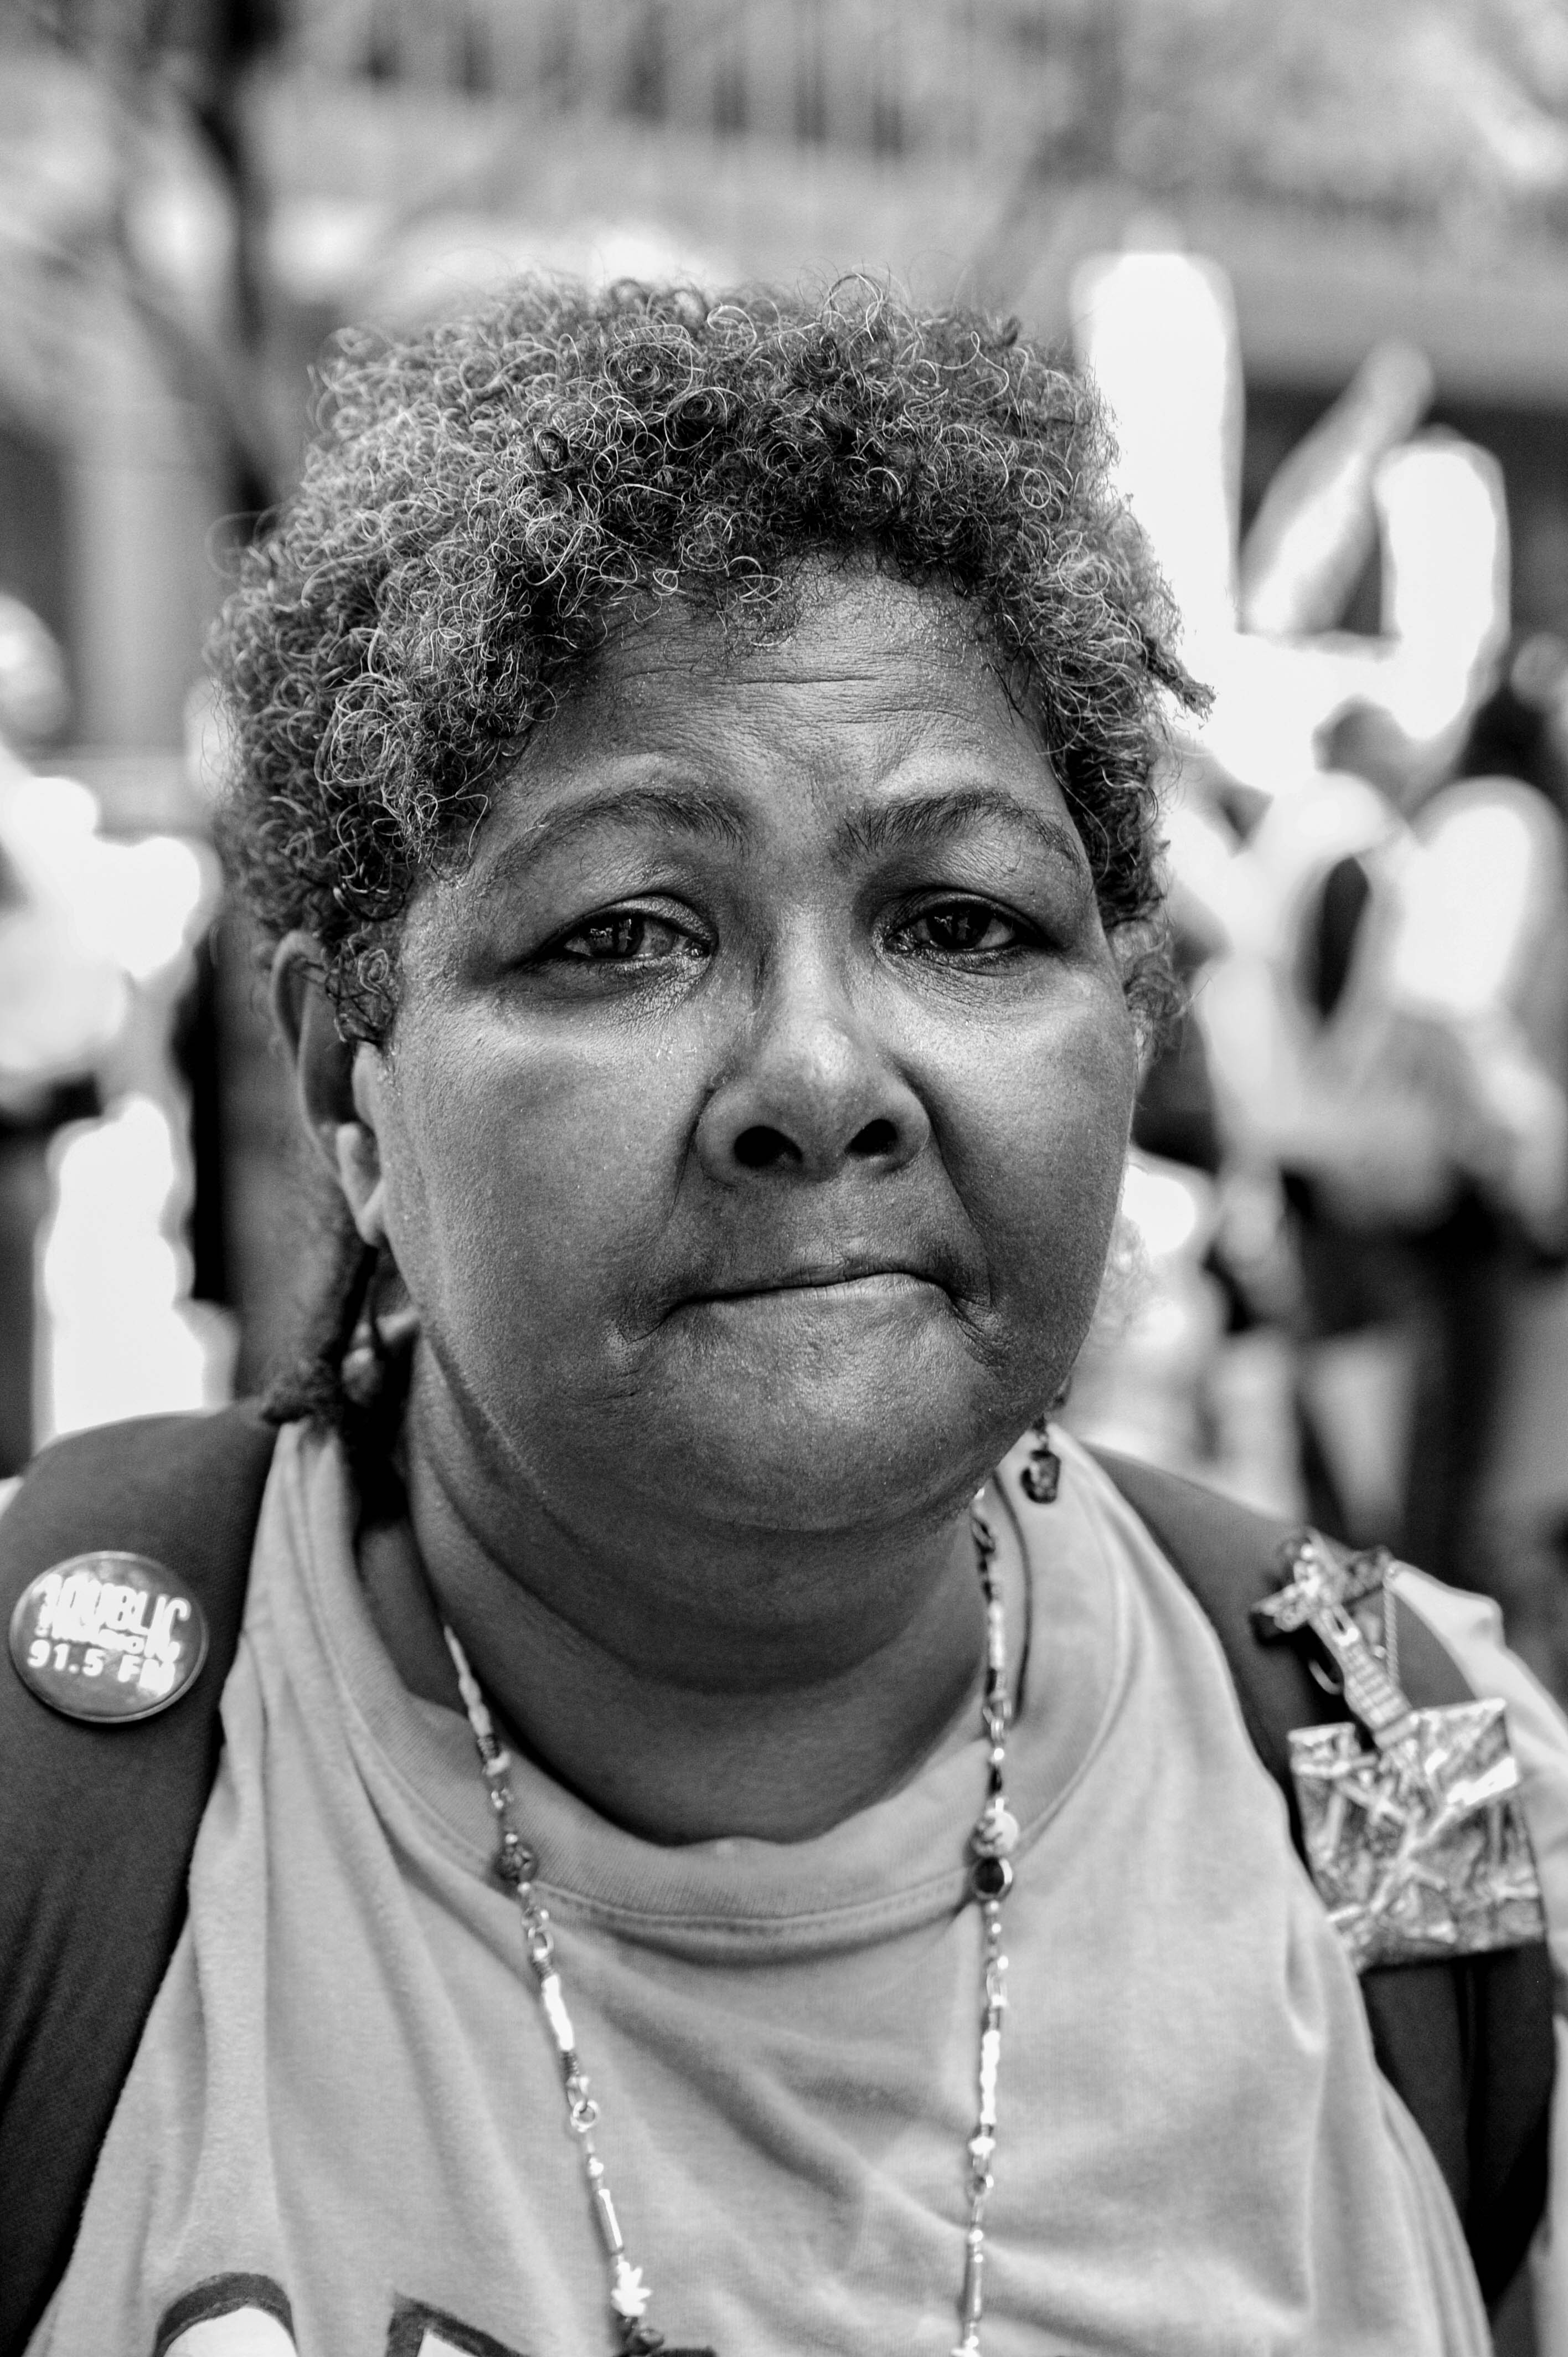 CHICAGO, IL. Aug. 29, 2015 - Sharon Pena, a lifelong Chicago resident, came out to express her view that African Americans need to start taking care of their own communities rather than blaming others.